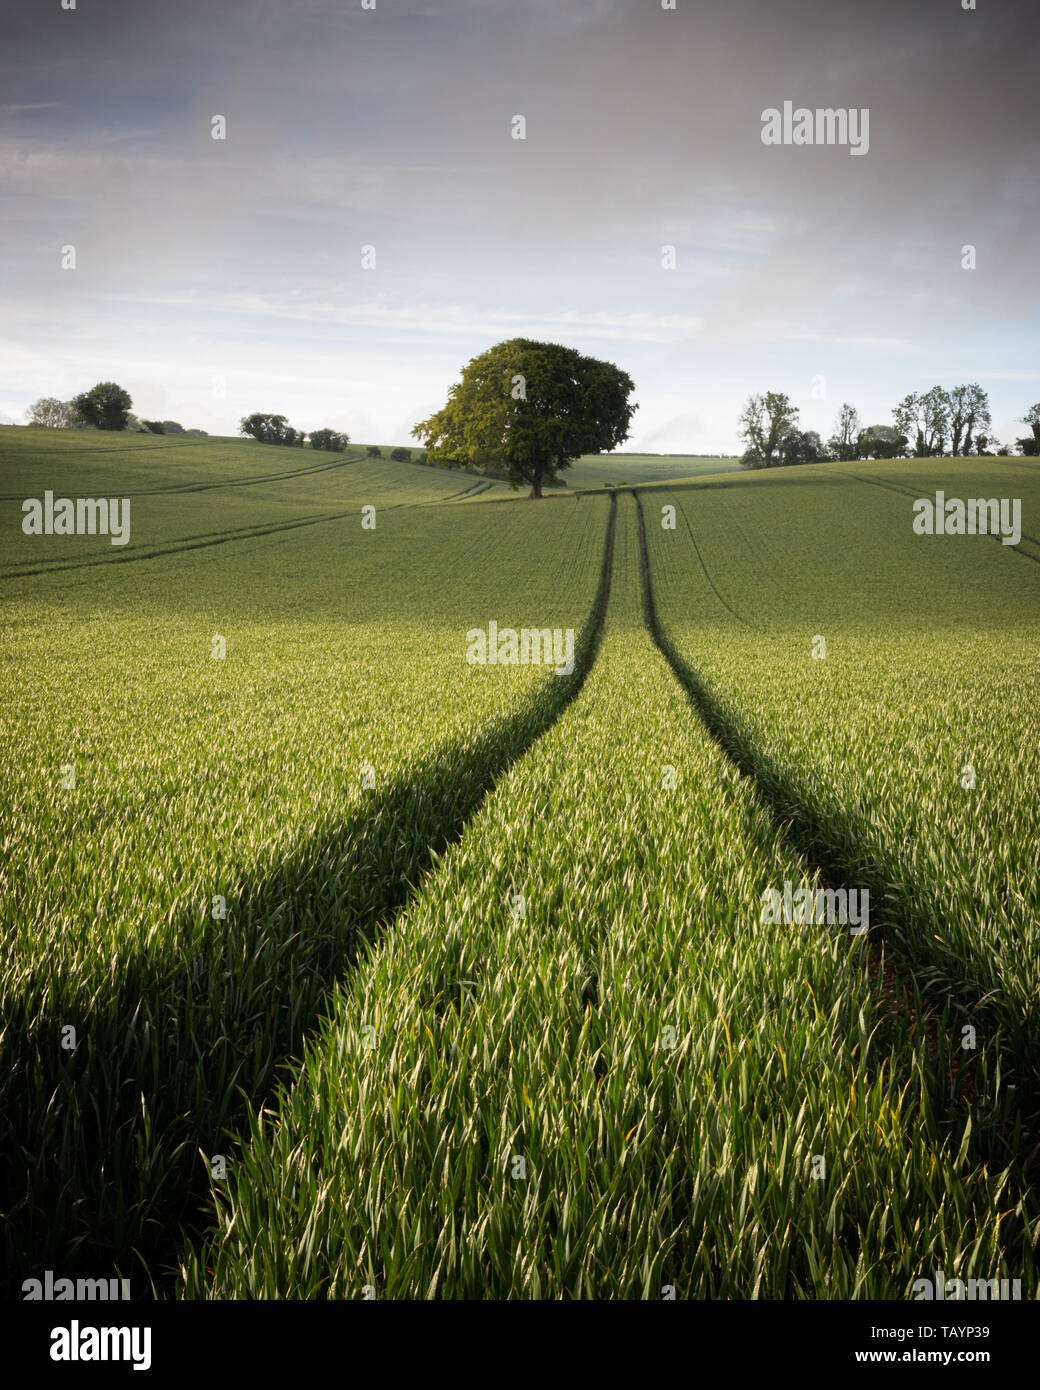 A lone tree in a green wheat field Stock Photo